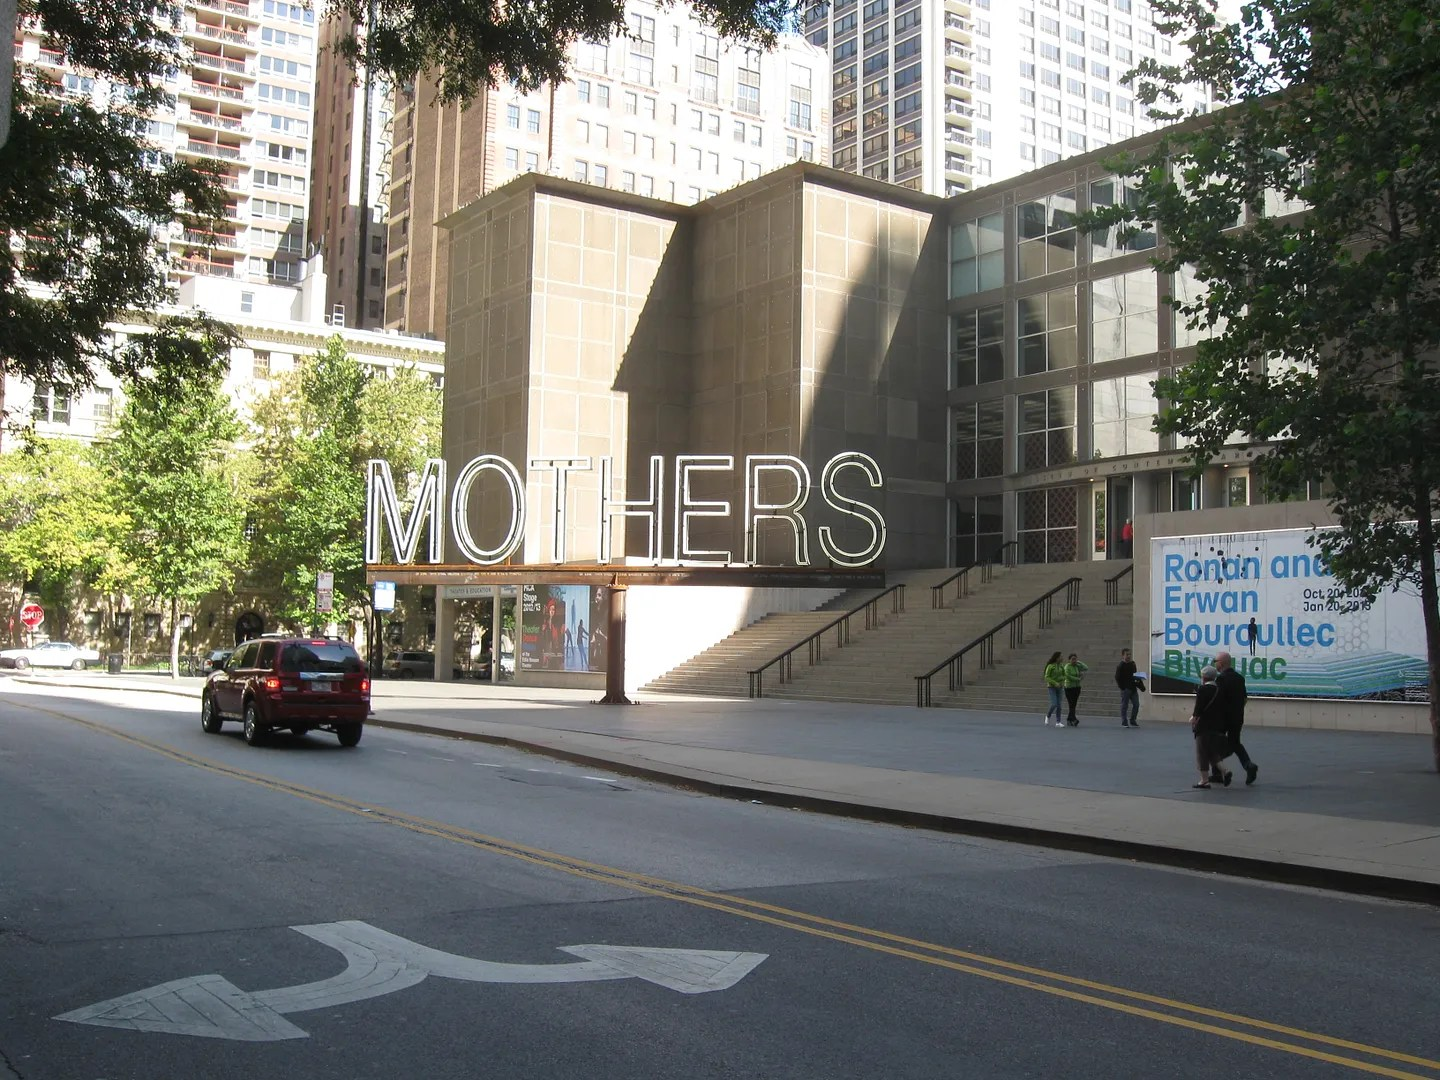 Mothers, MCA, Chicago